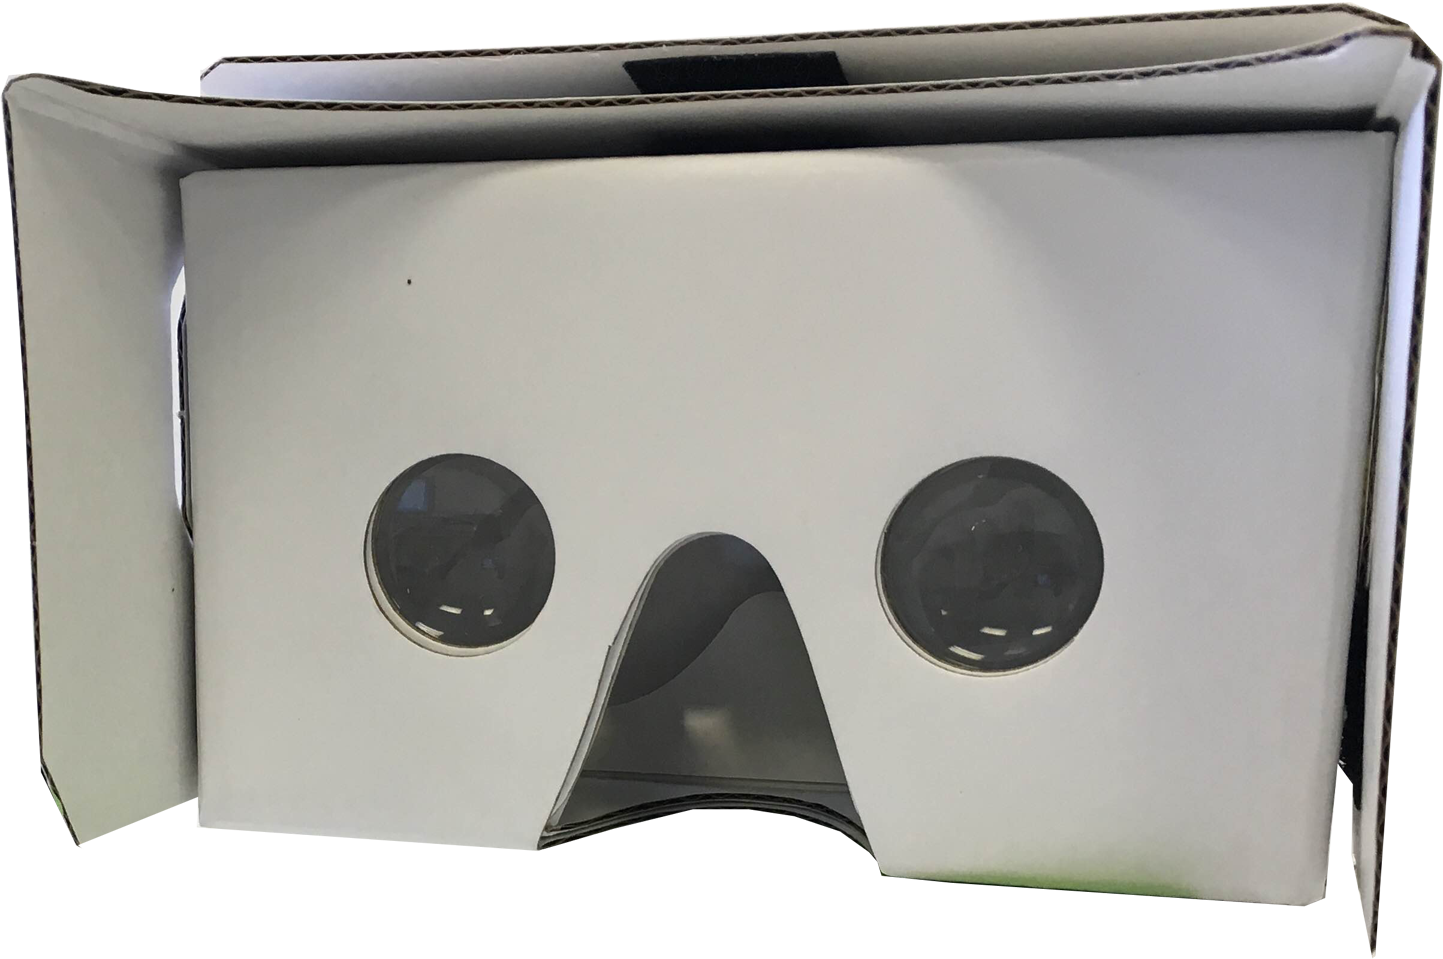 Buy Google Cardboard: Now available in South Africa